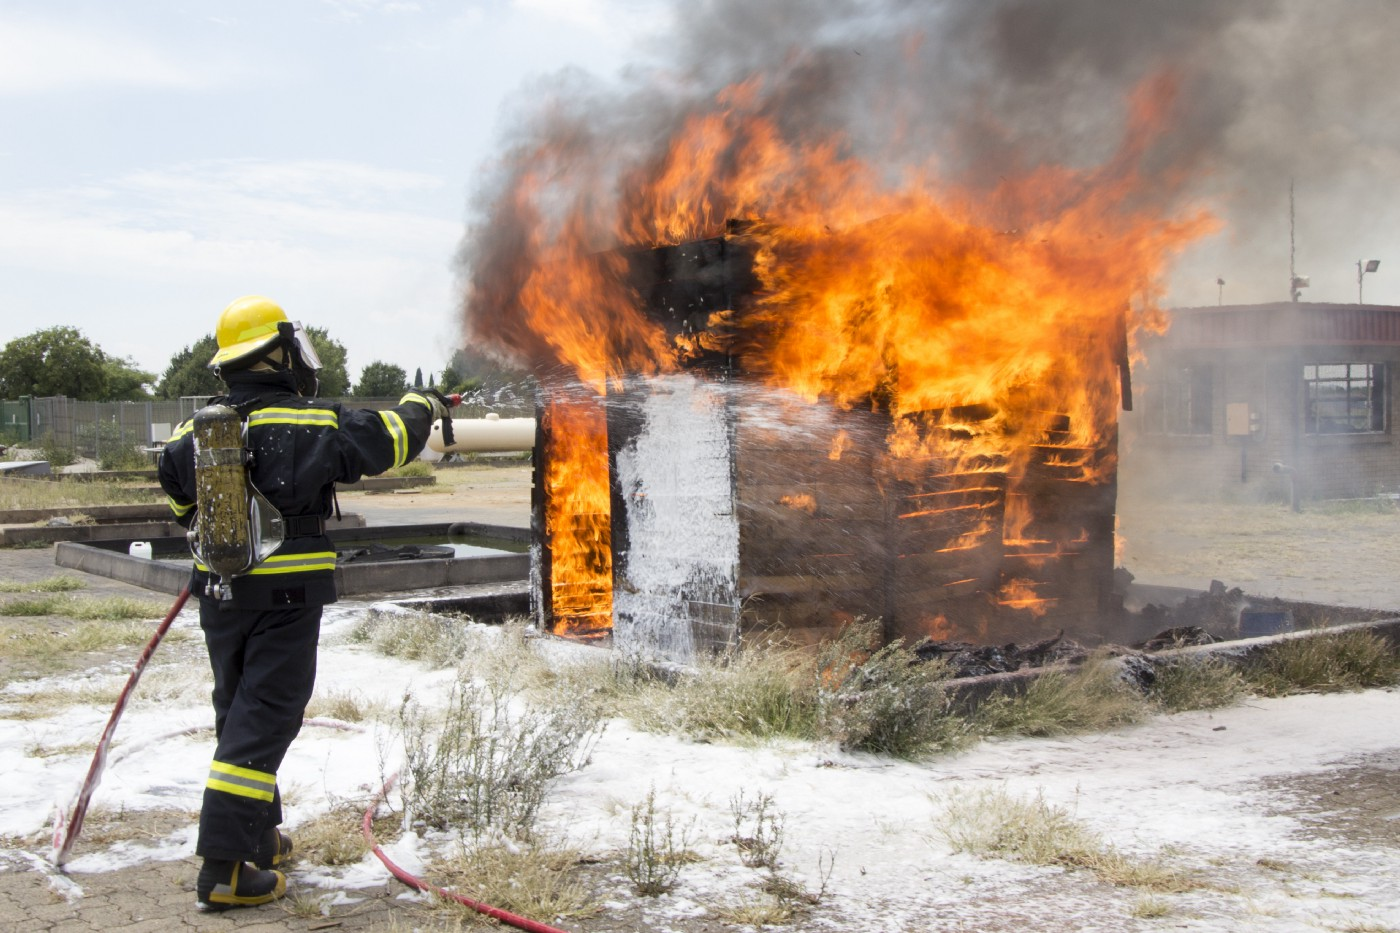 A firefighter points a hose at a vehicle engulfed in flames.